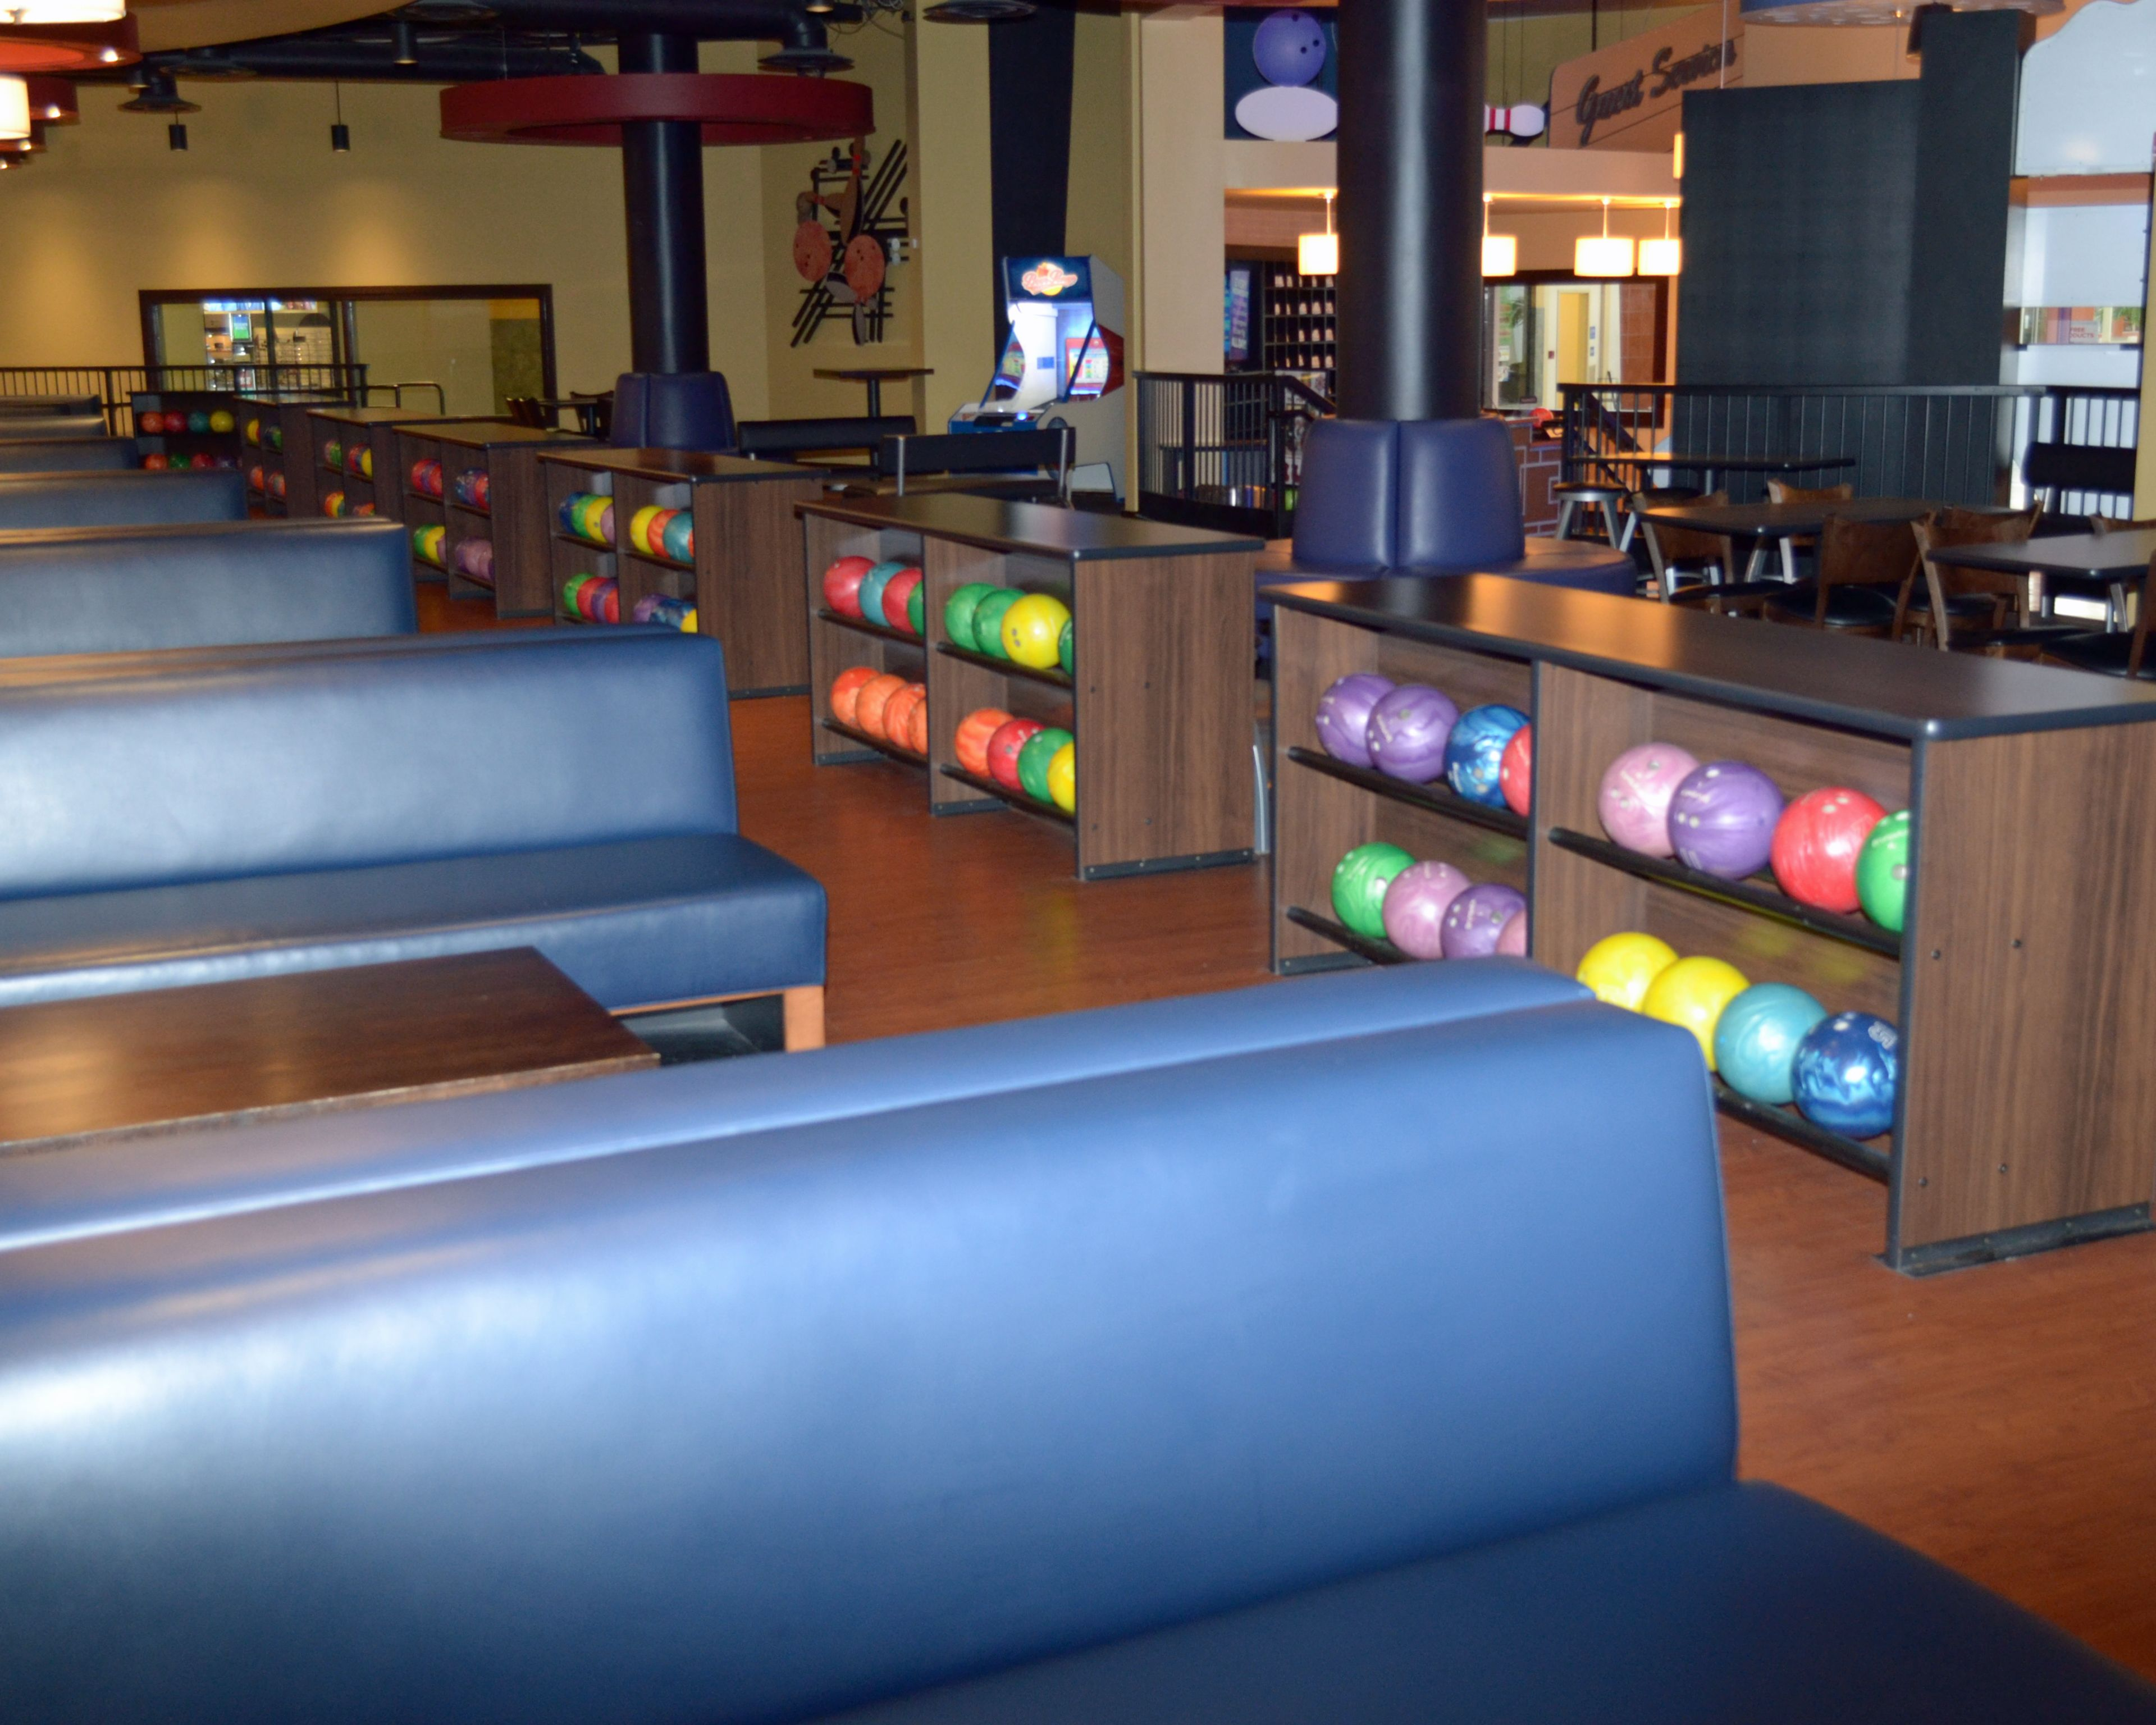 Venue Furniture Had The Opportunity To Provide All Of The Furniture For CW  Lanes And Games